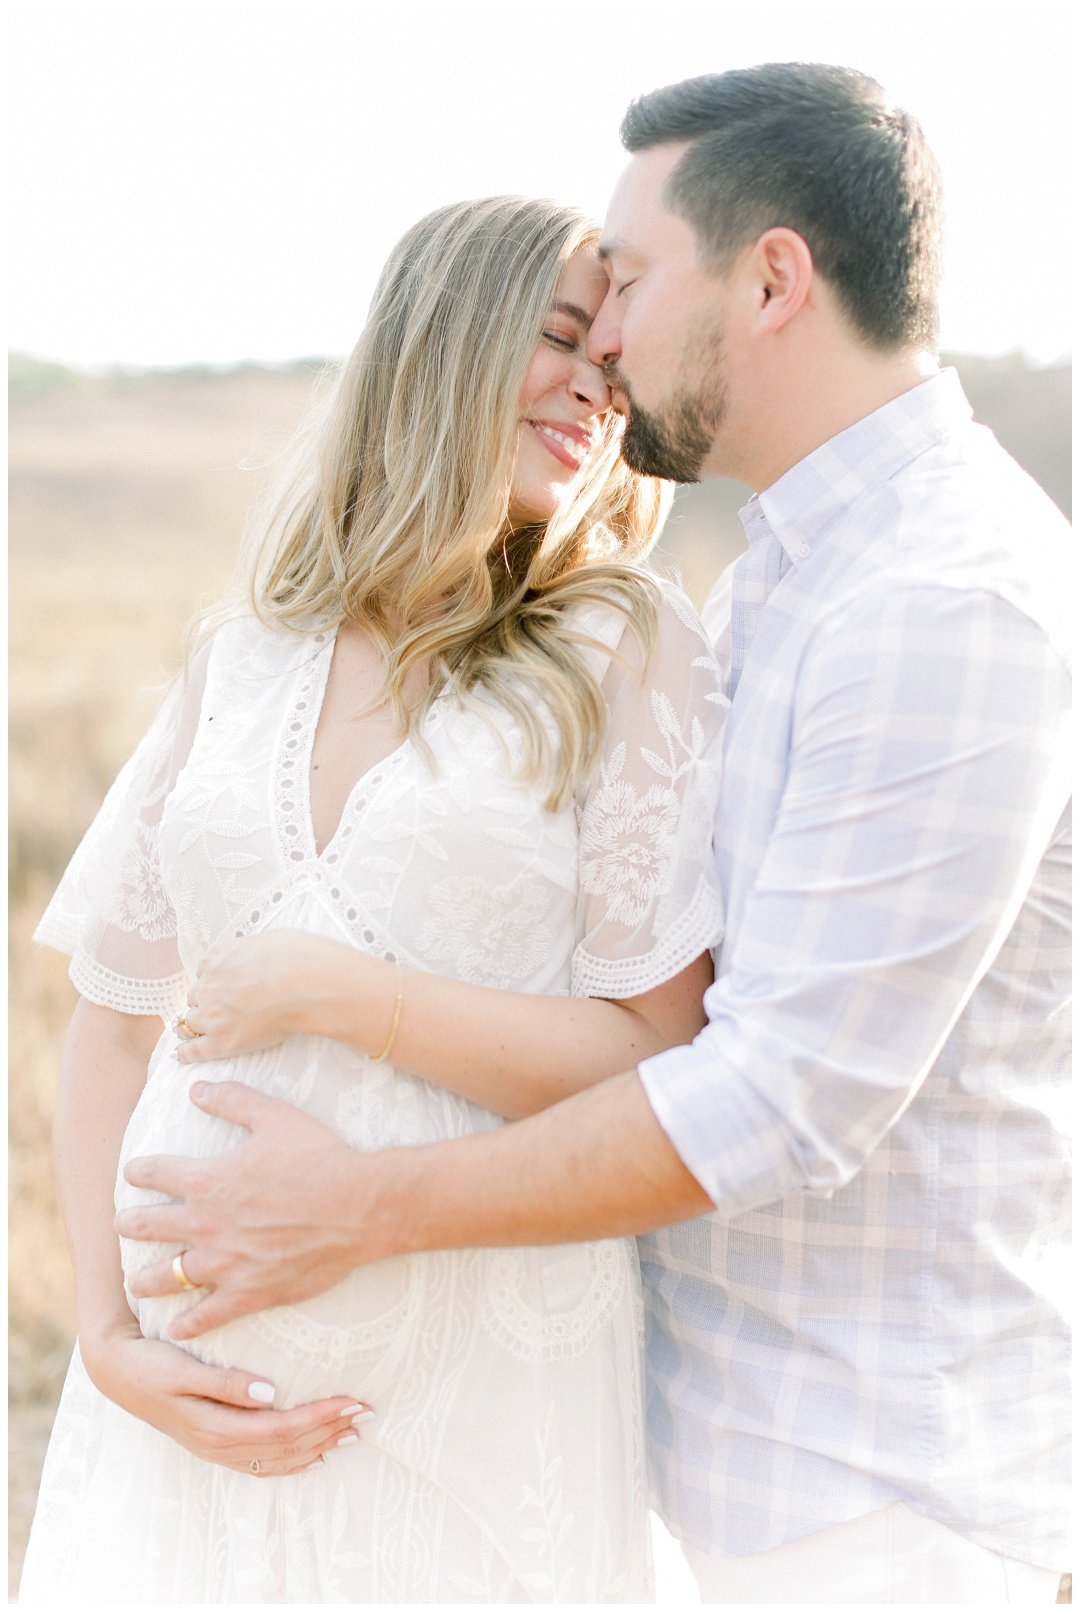 Newport_Beach_Maternity_Photographer_Newport_Beach_Maternity_Photography_Orange_County_Photography_Cori_Kleckner_Photography_Orange_County_Quail_Hill_Photography_The_Ritz_Carlton_Laguna_Niguel_Resort_ Maternity_Session__1806.jpg